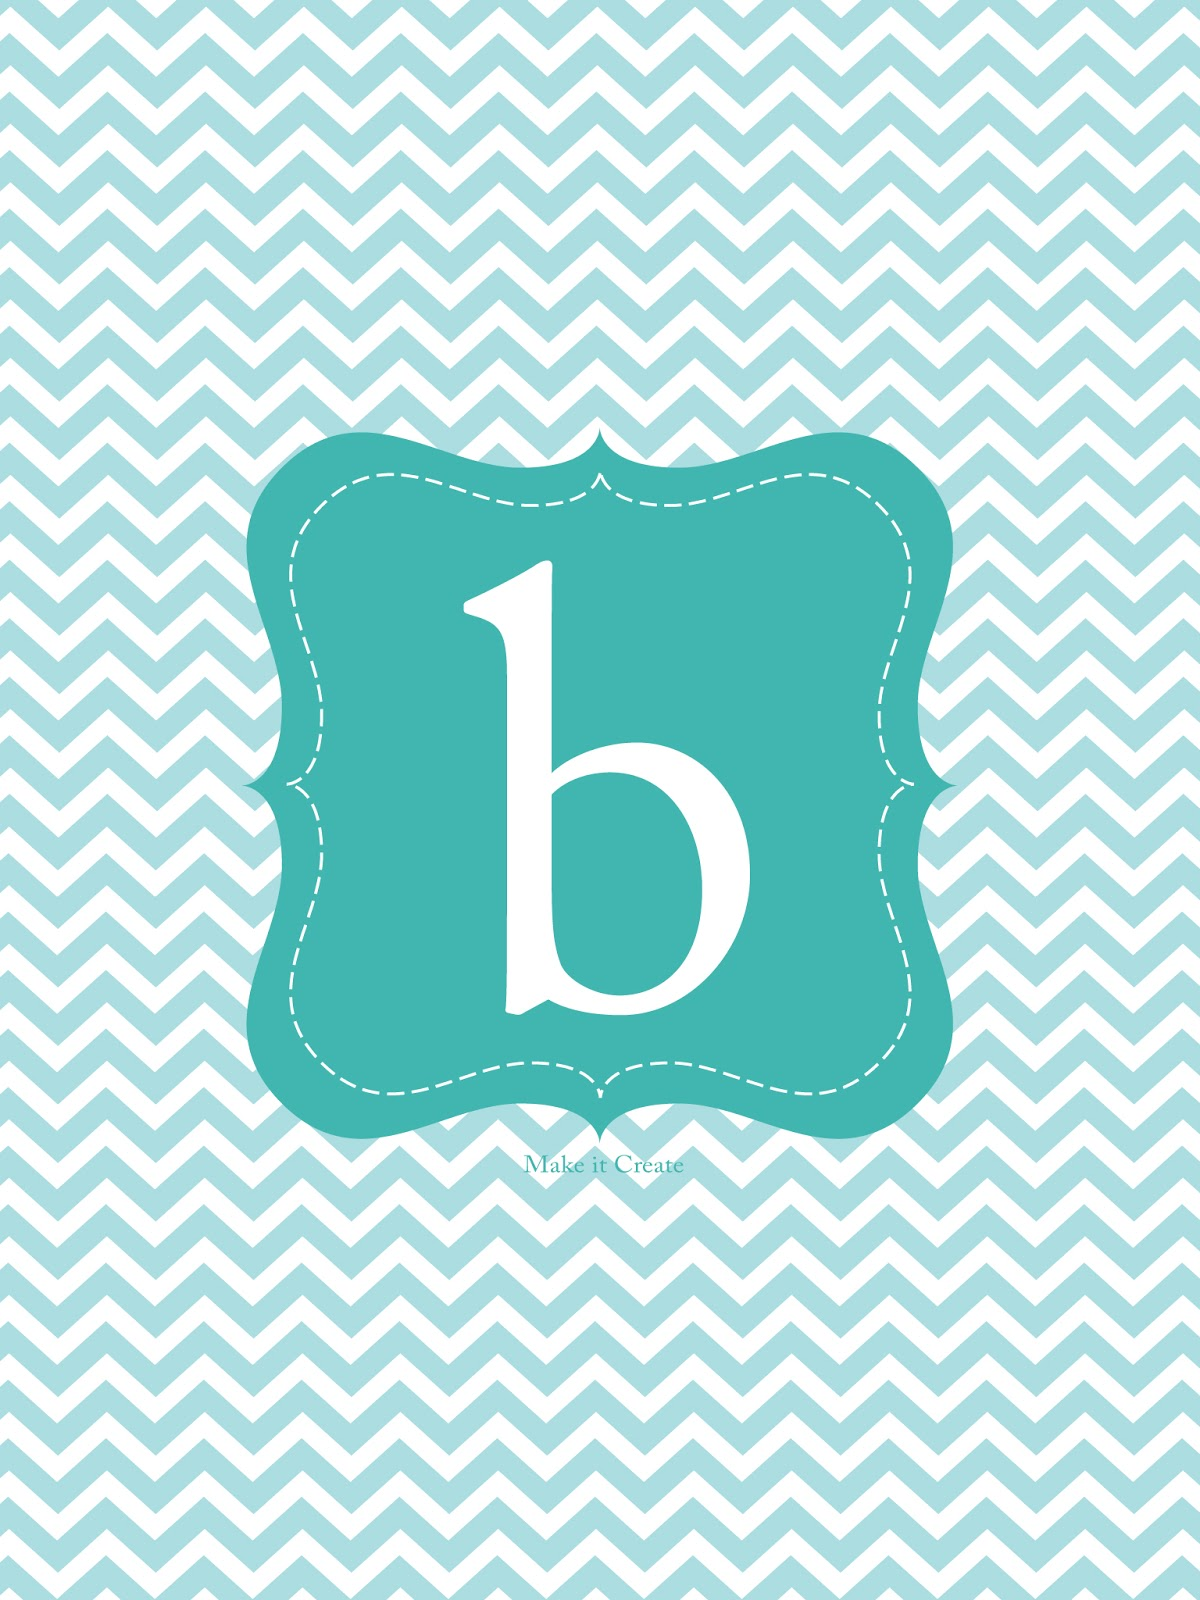 Cute Chevron Wallpapers For Ipad Make It Create Printables Amp Backgrounds Wallpapers